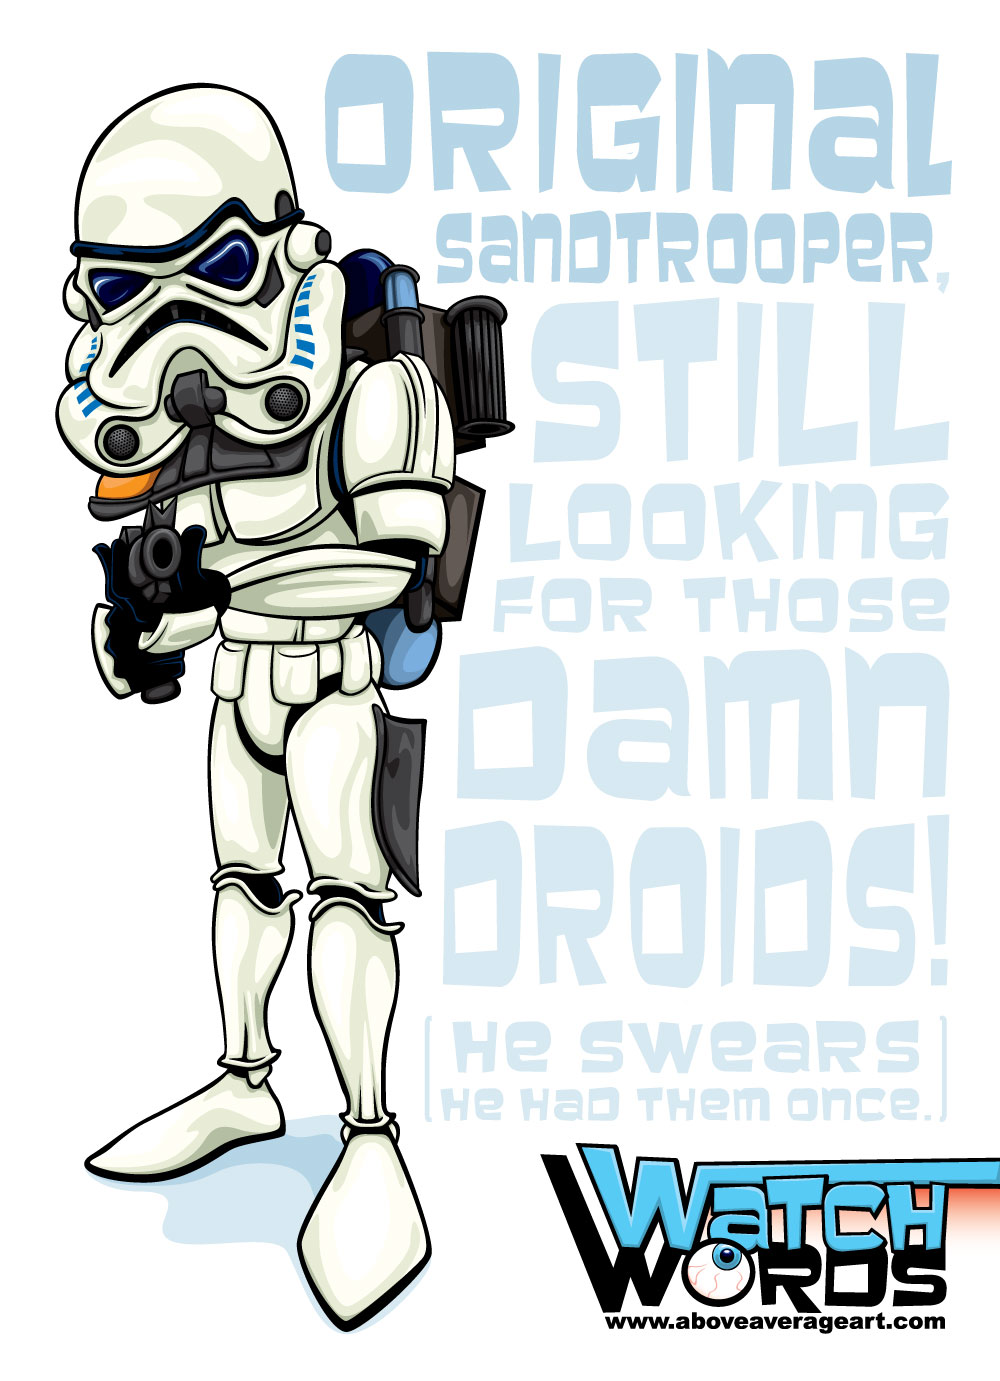 Original-Storm-Trooper.jpg